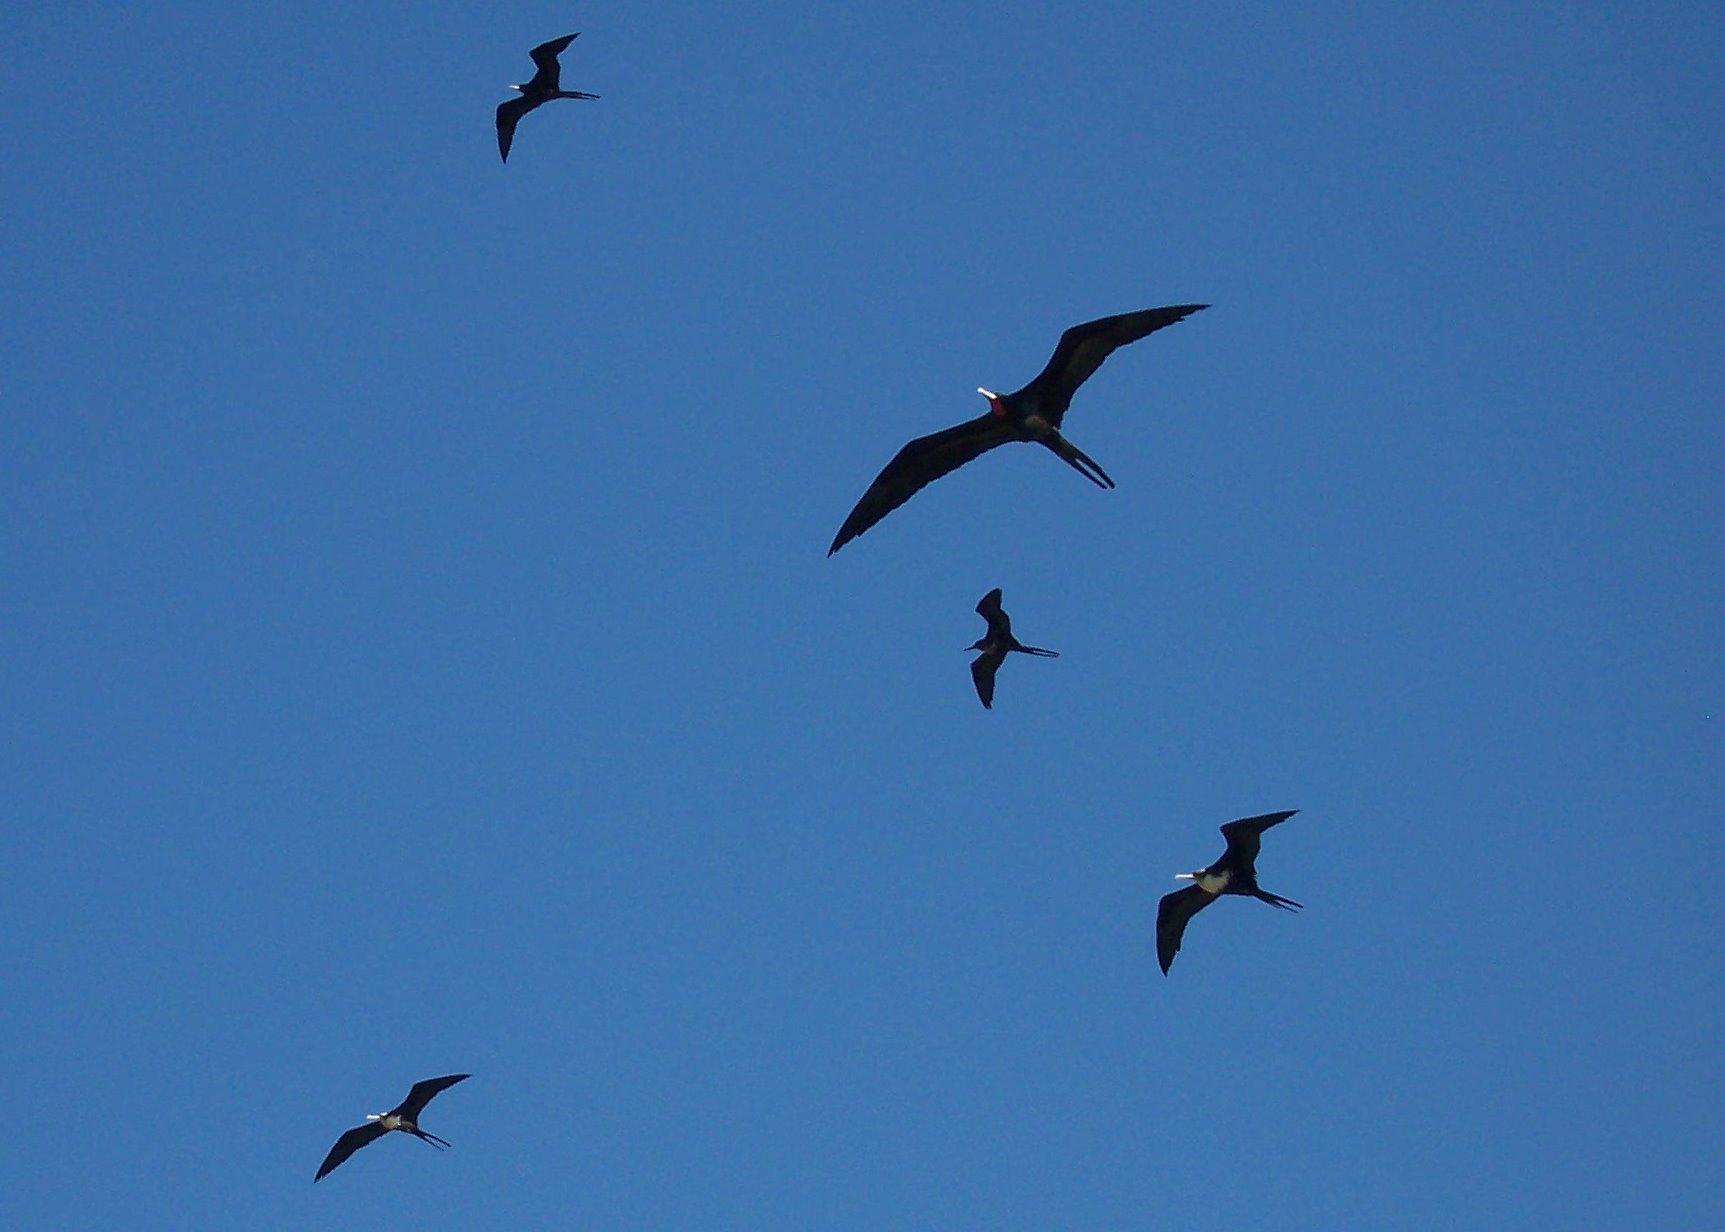 http://upload.wikimedia.org/wikipedia/commons/1/13/EuropaIsland_Frigatebirds.JPG